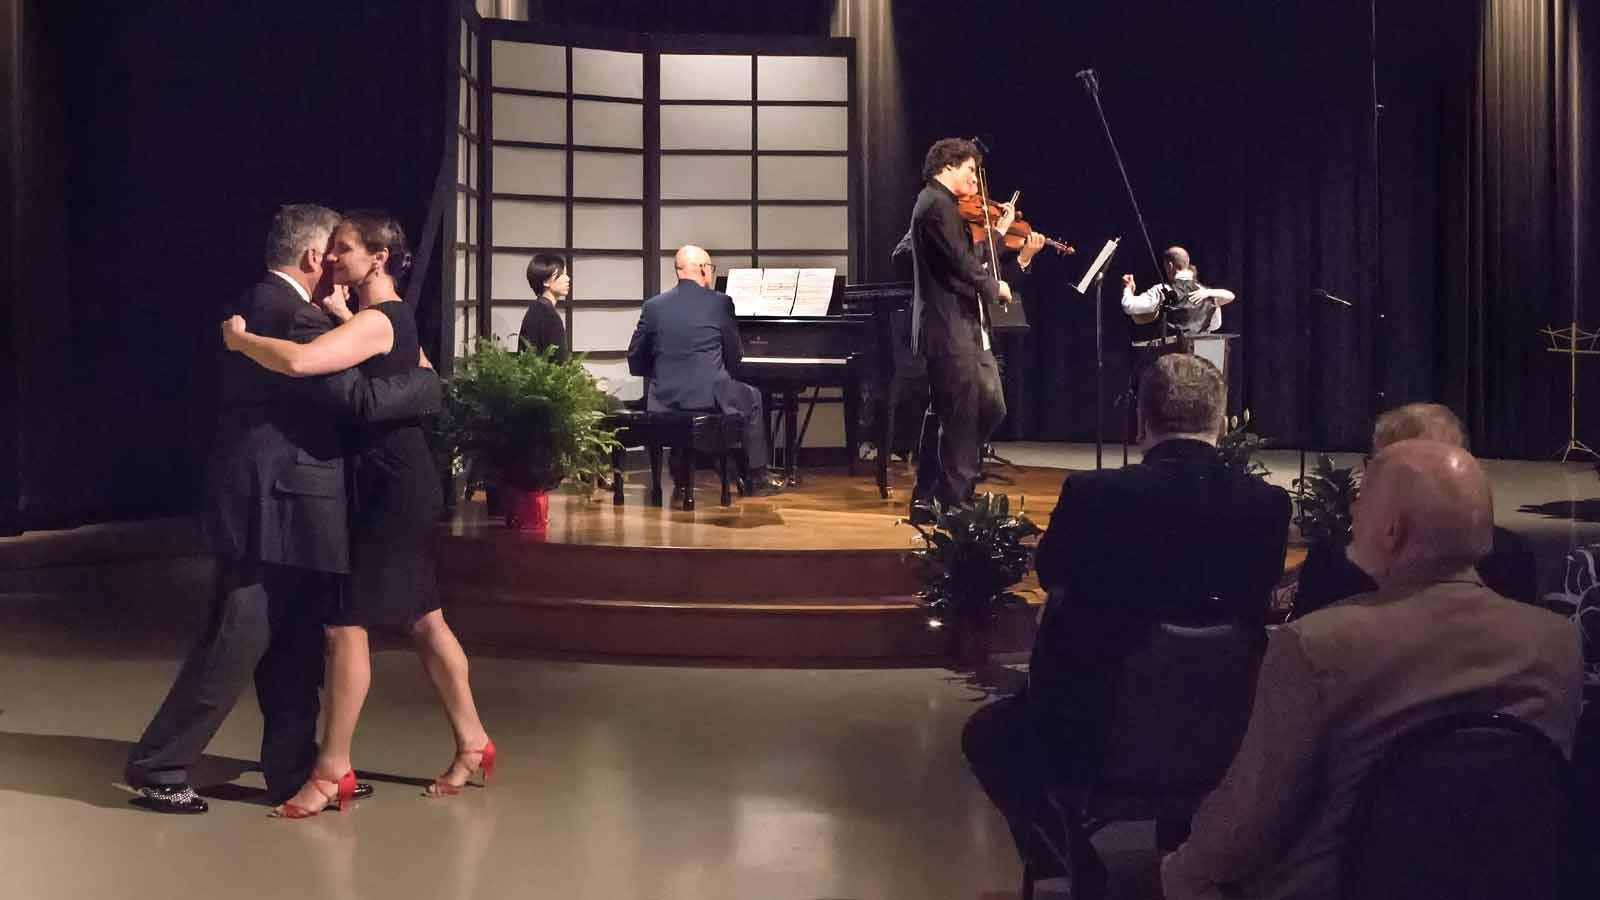 Tango dancers and violinists